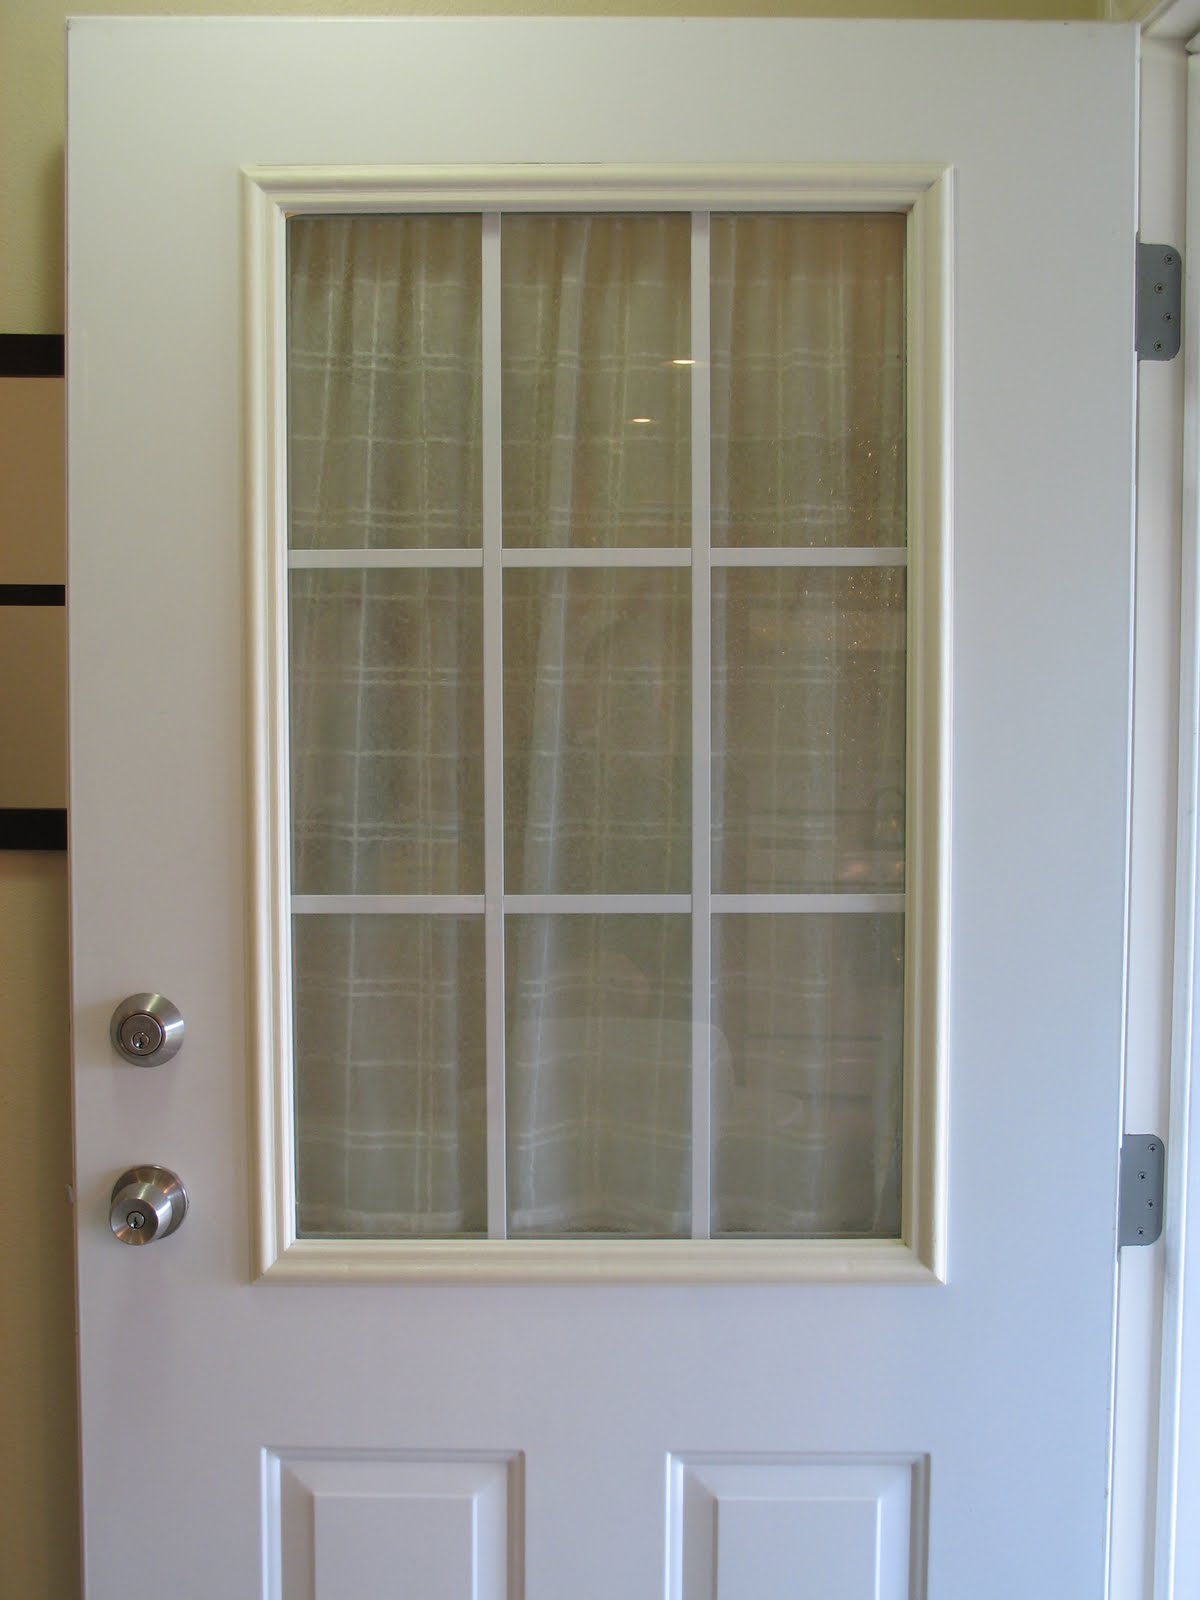 Doors Windows: This Thrifty House: Spray Painted Door Trim